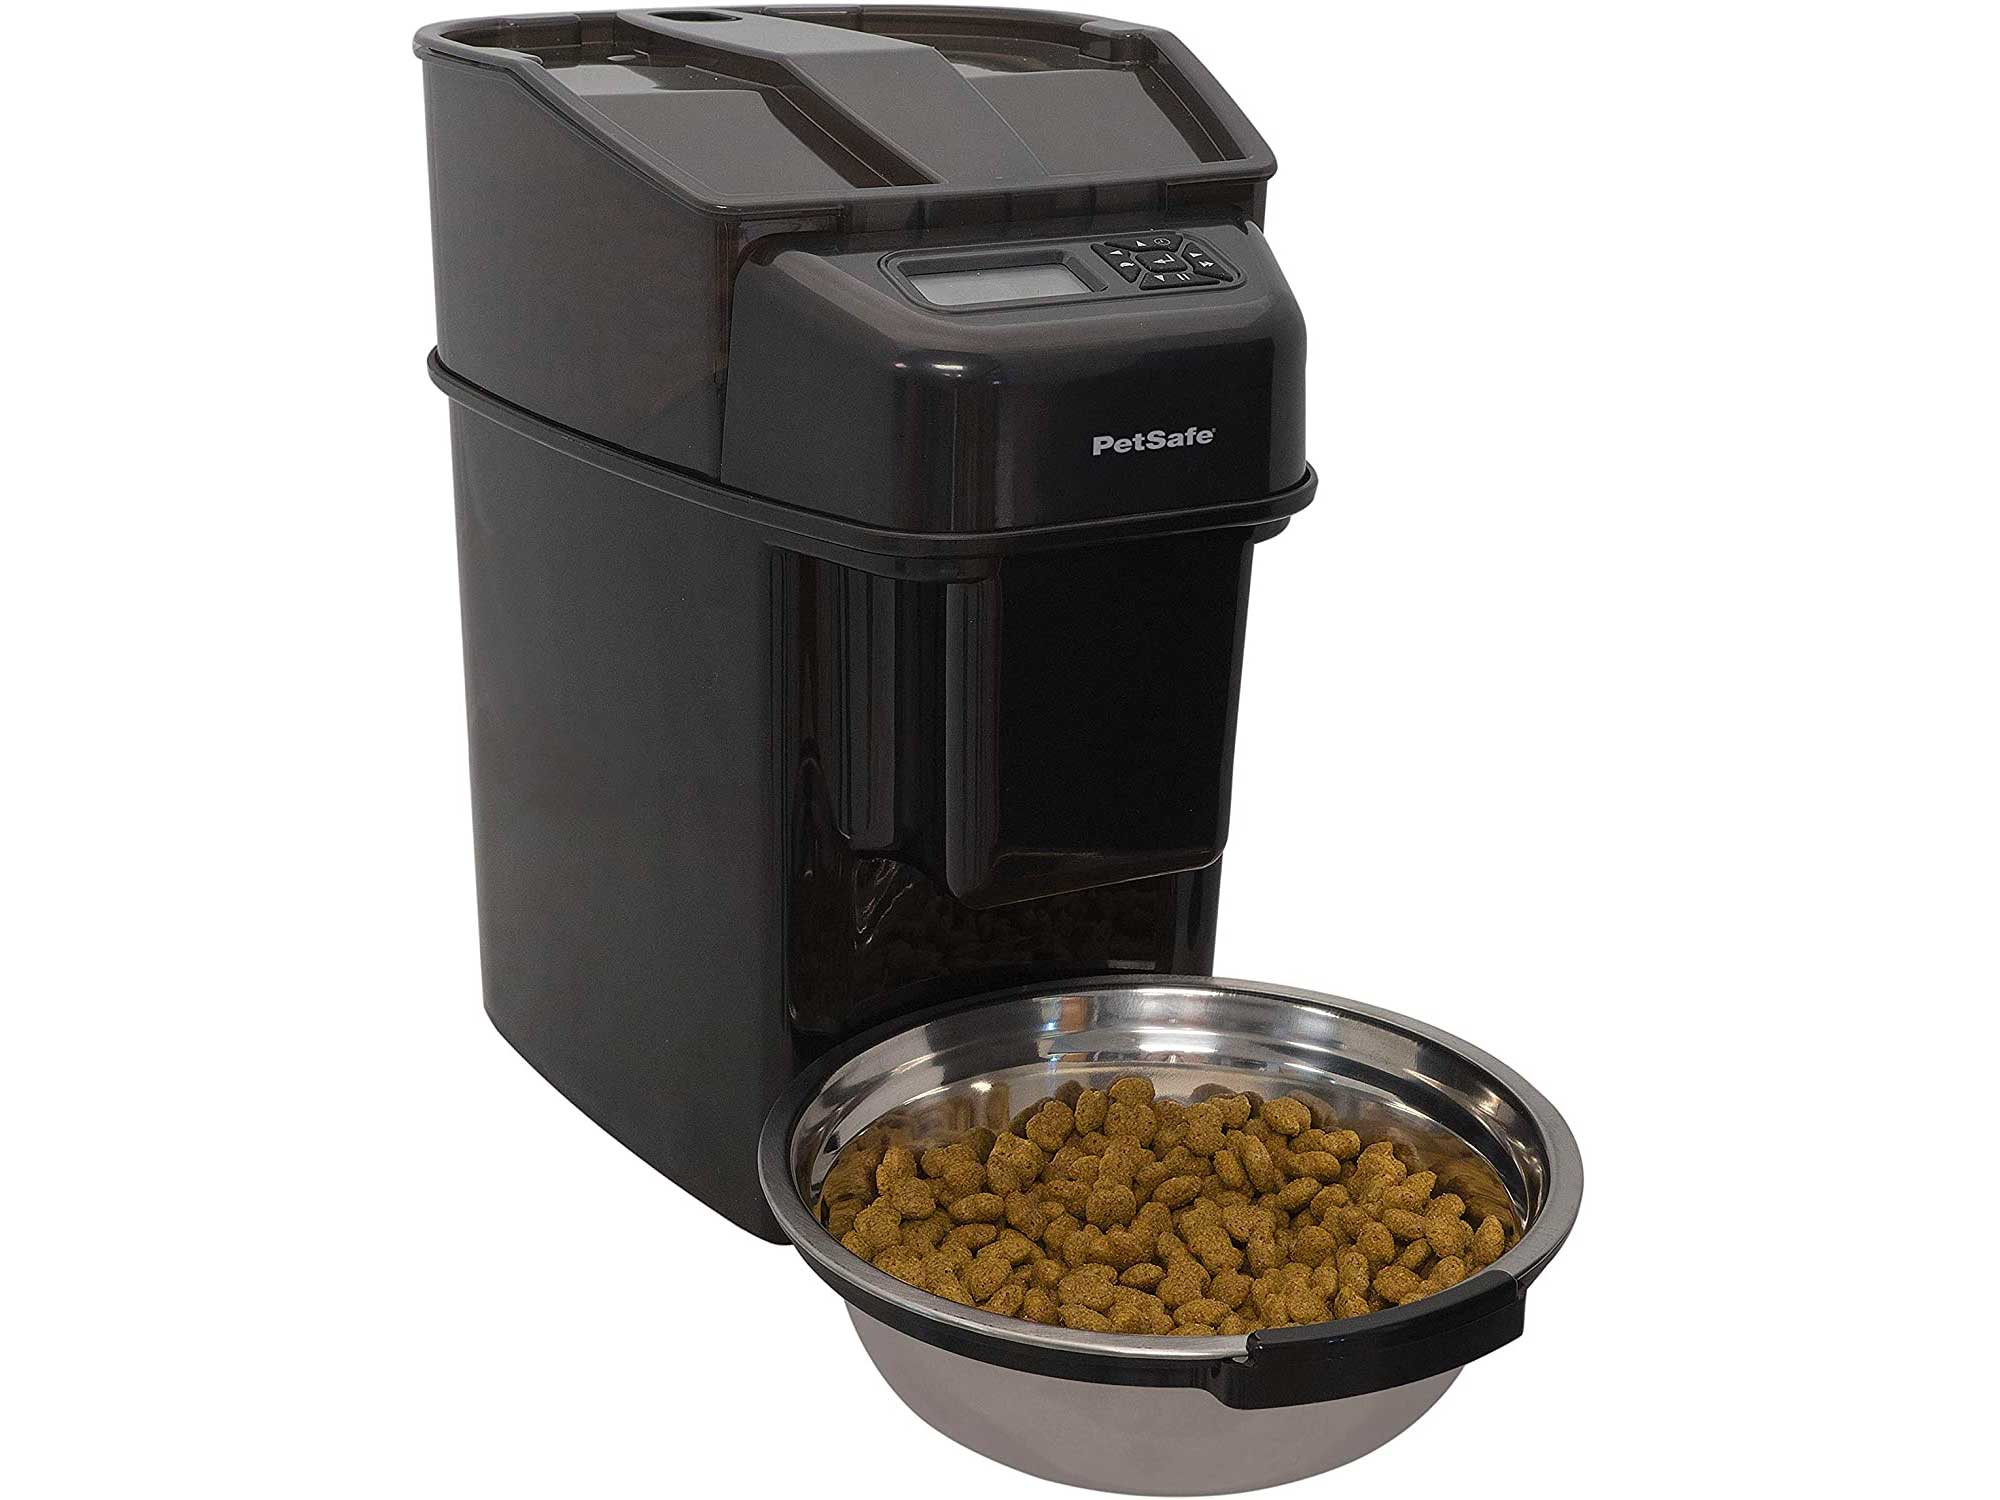 PetSafe Healthy Pet Simply Feed Pre-Portioned Automatic Food Dispenser for Cats and Dogs